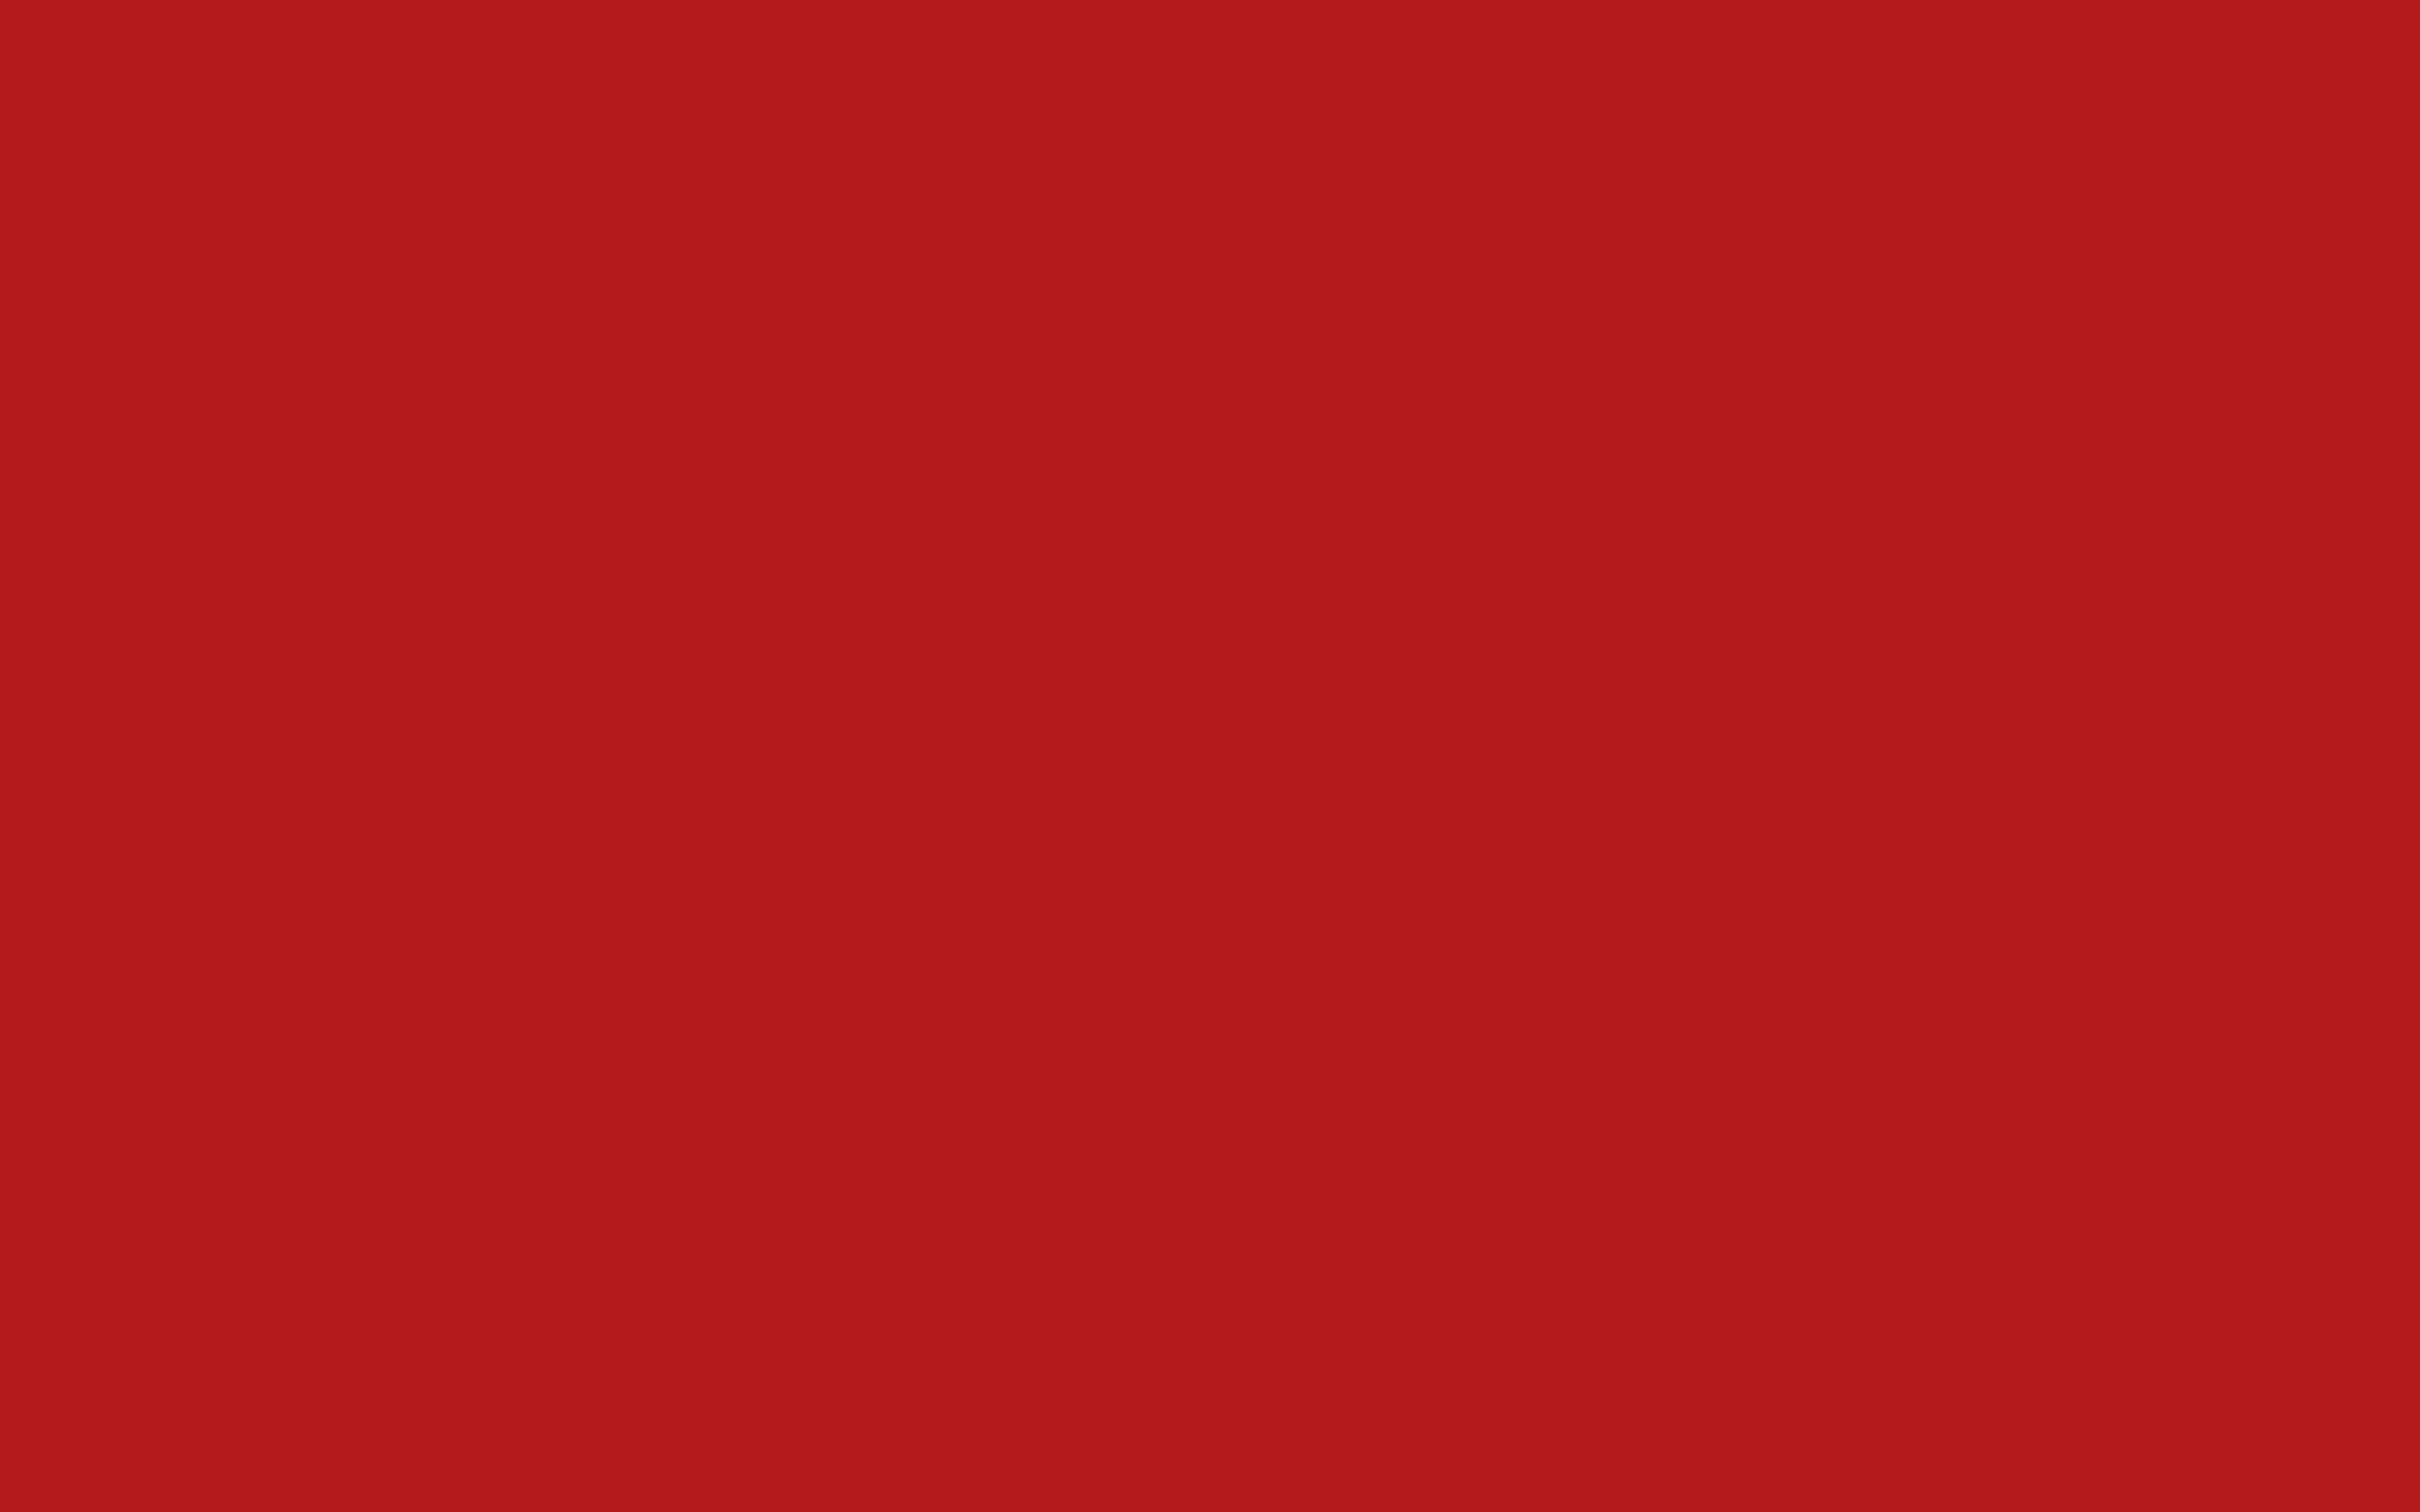 comimages2560x16002560x1600 cornell red solid color backgroundjpg 2560x1600